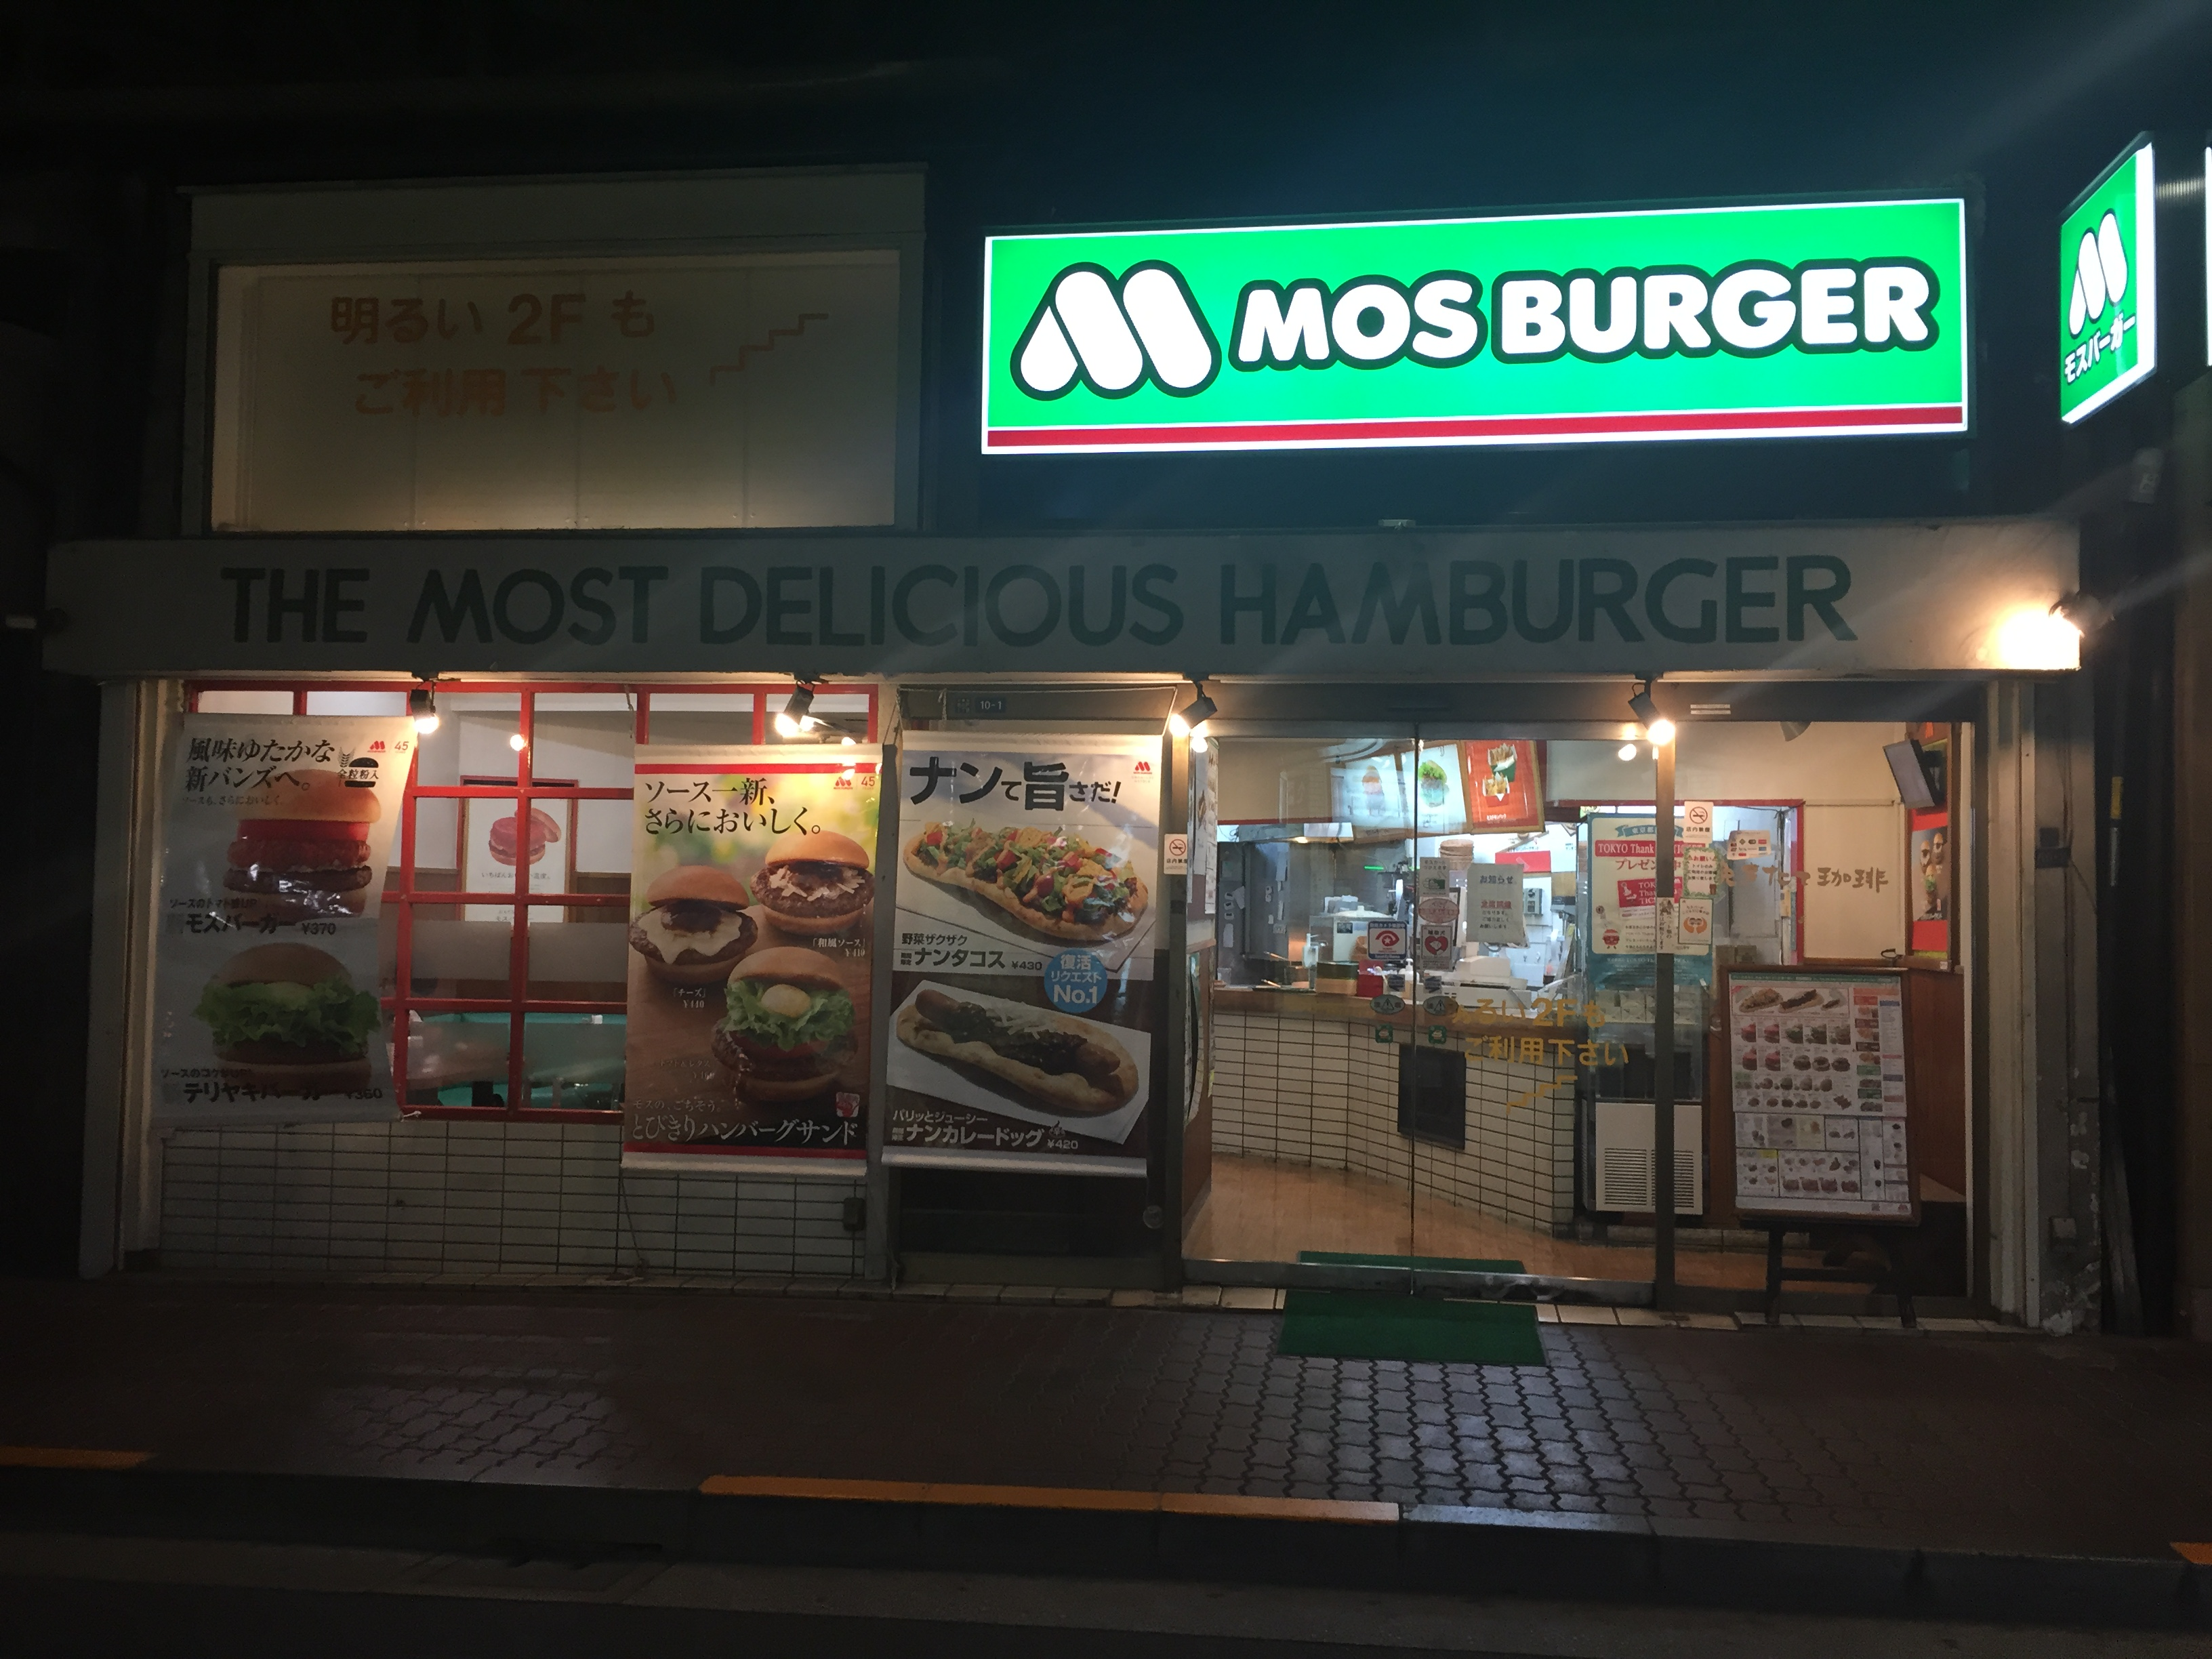 A Picture of a MoS Burger store